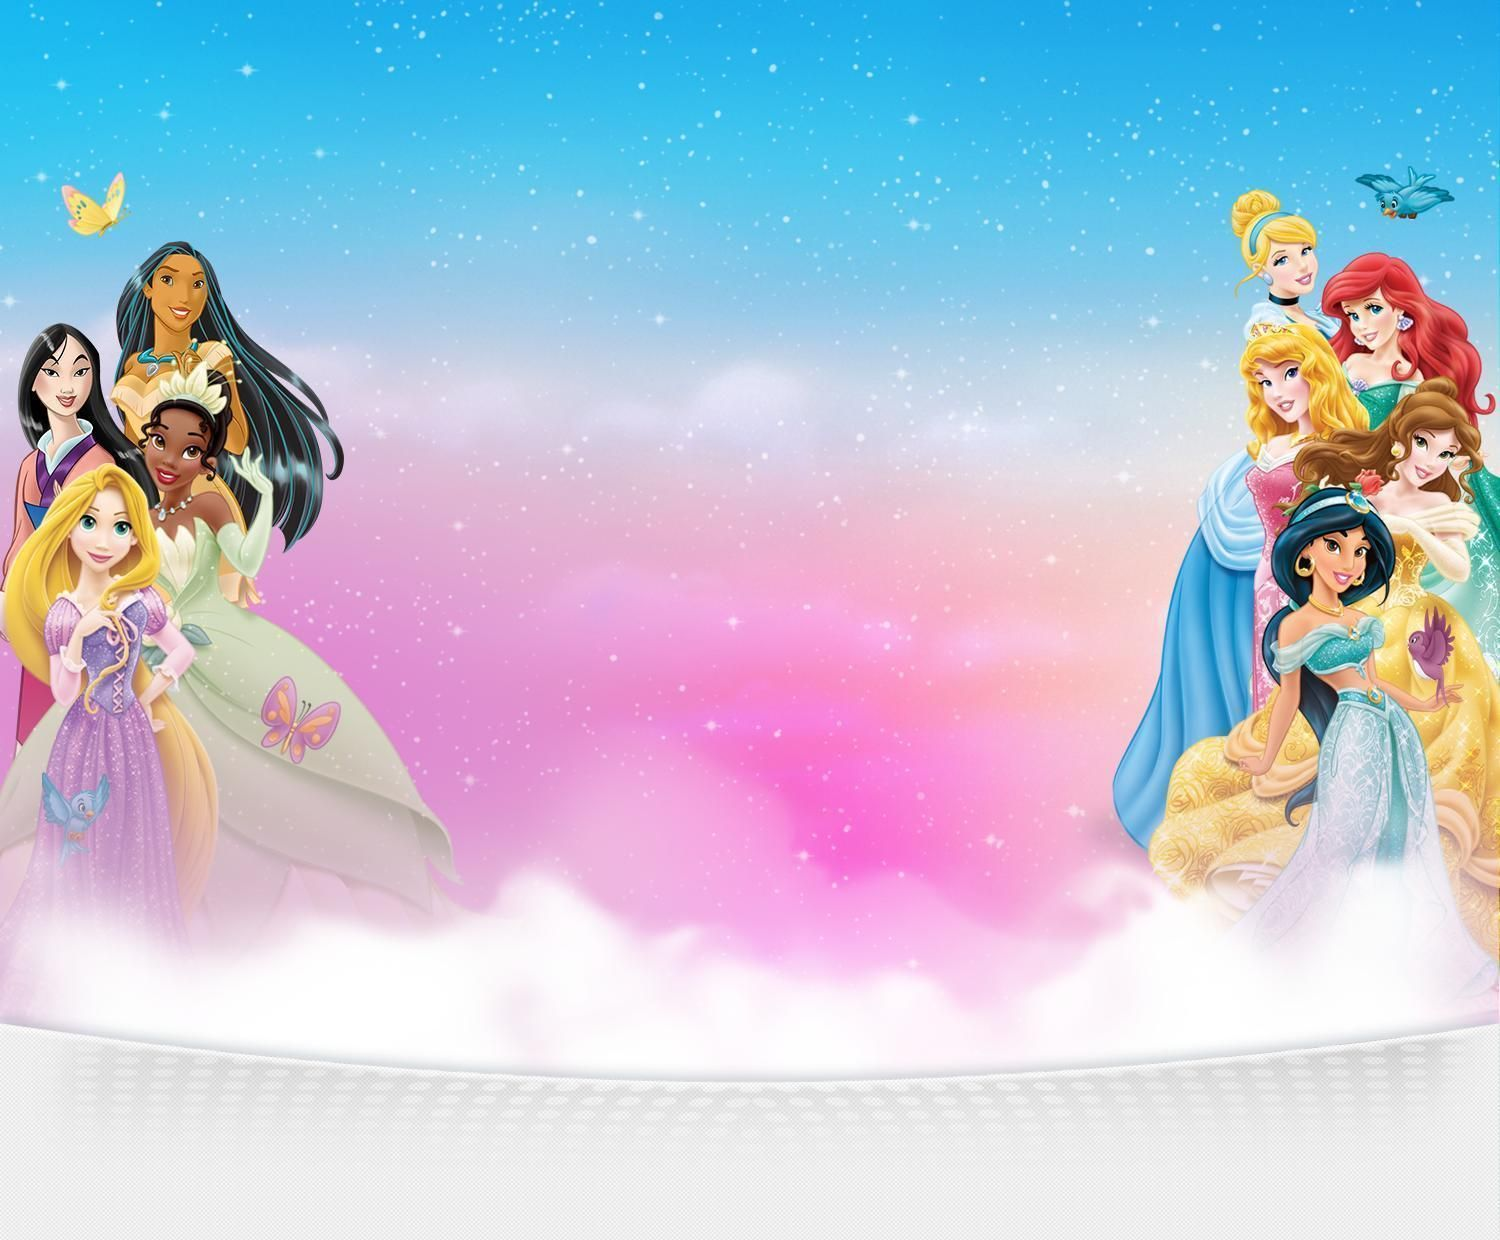 Disney Princess Backgrounds Disney princess background